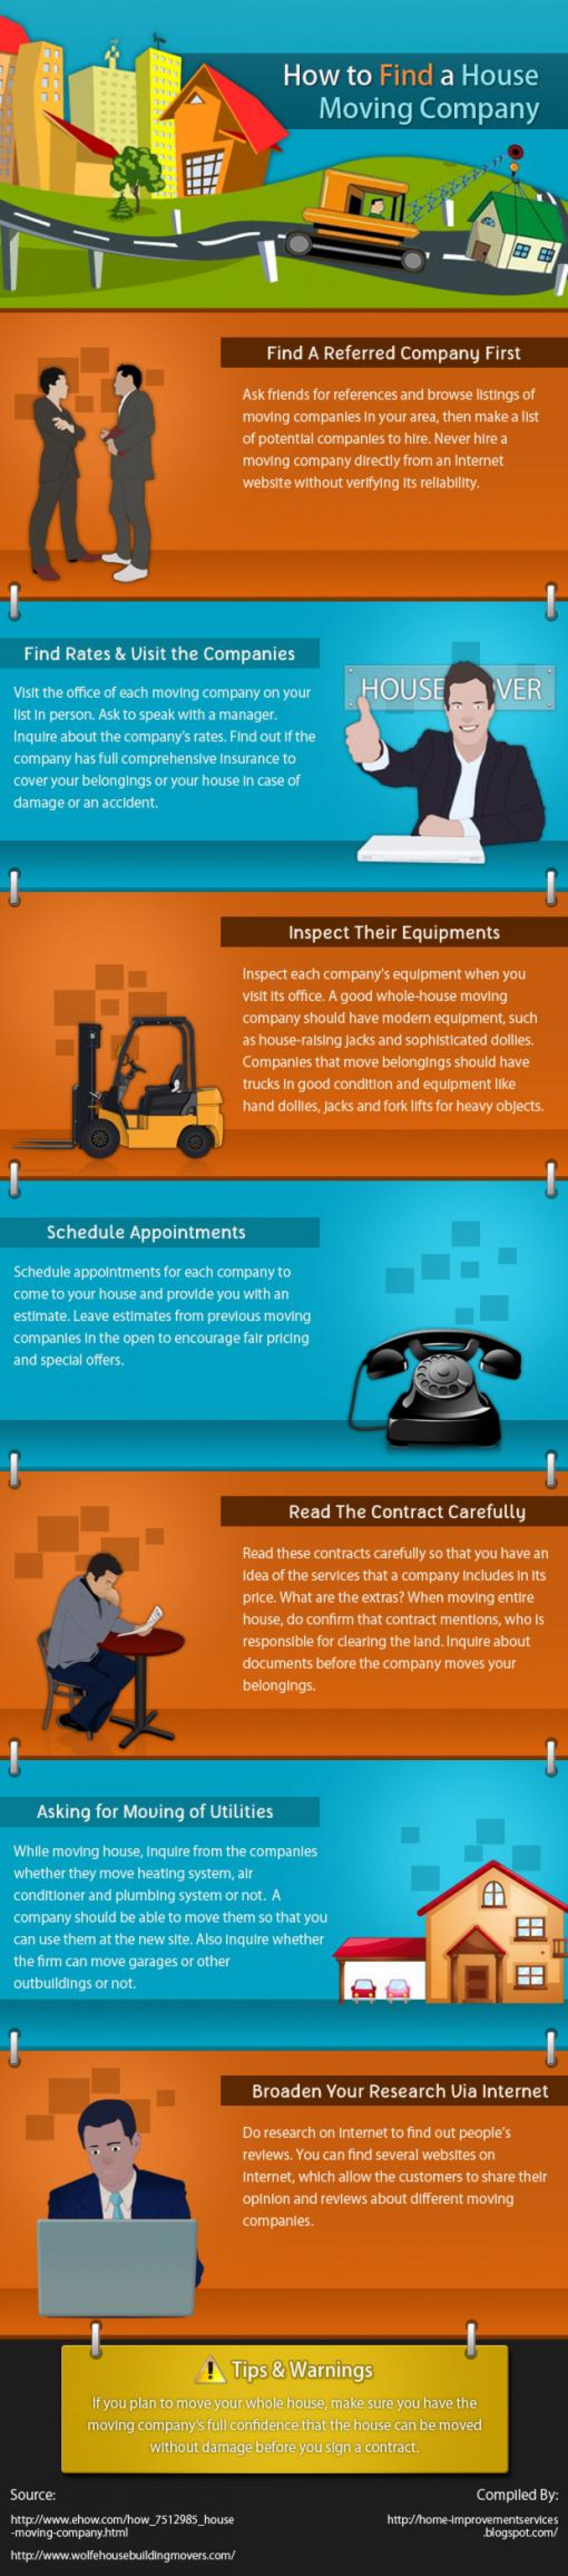 How To Find a House Moving Company Infographic